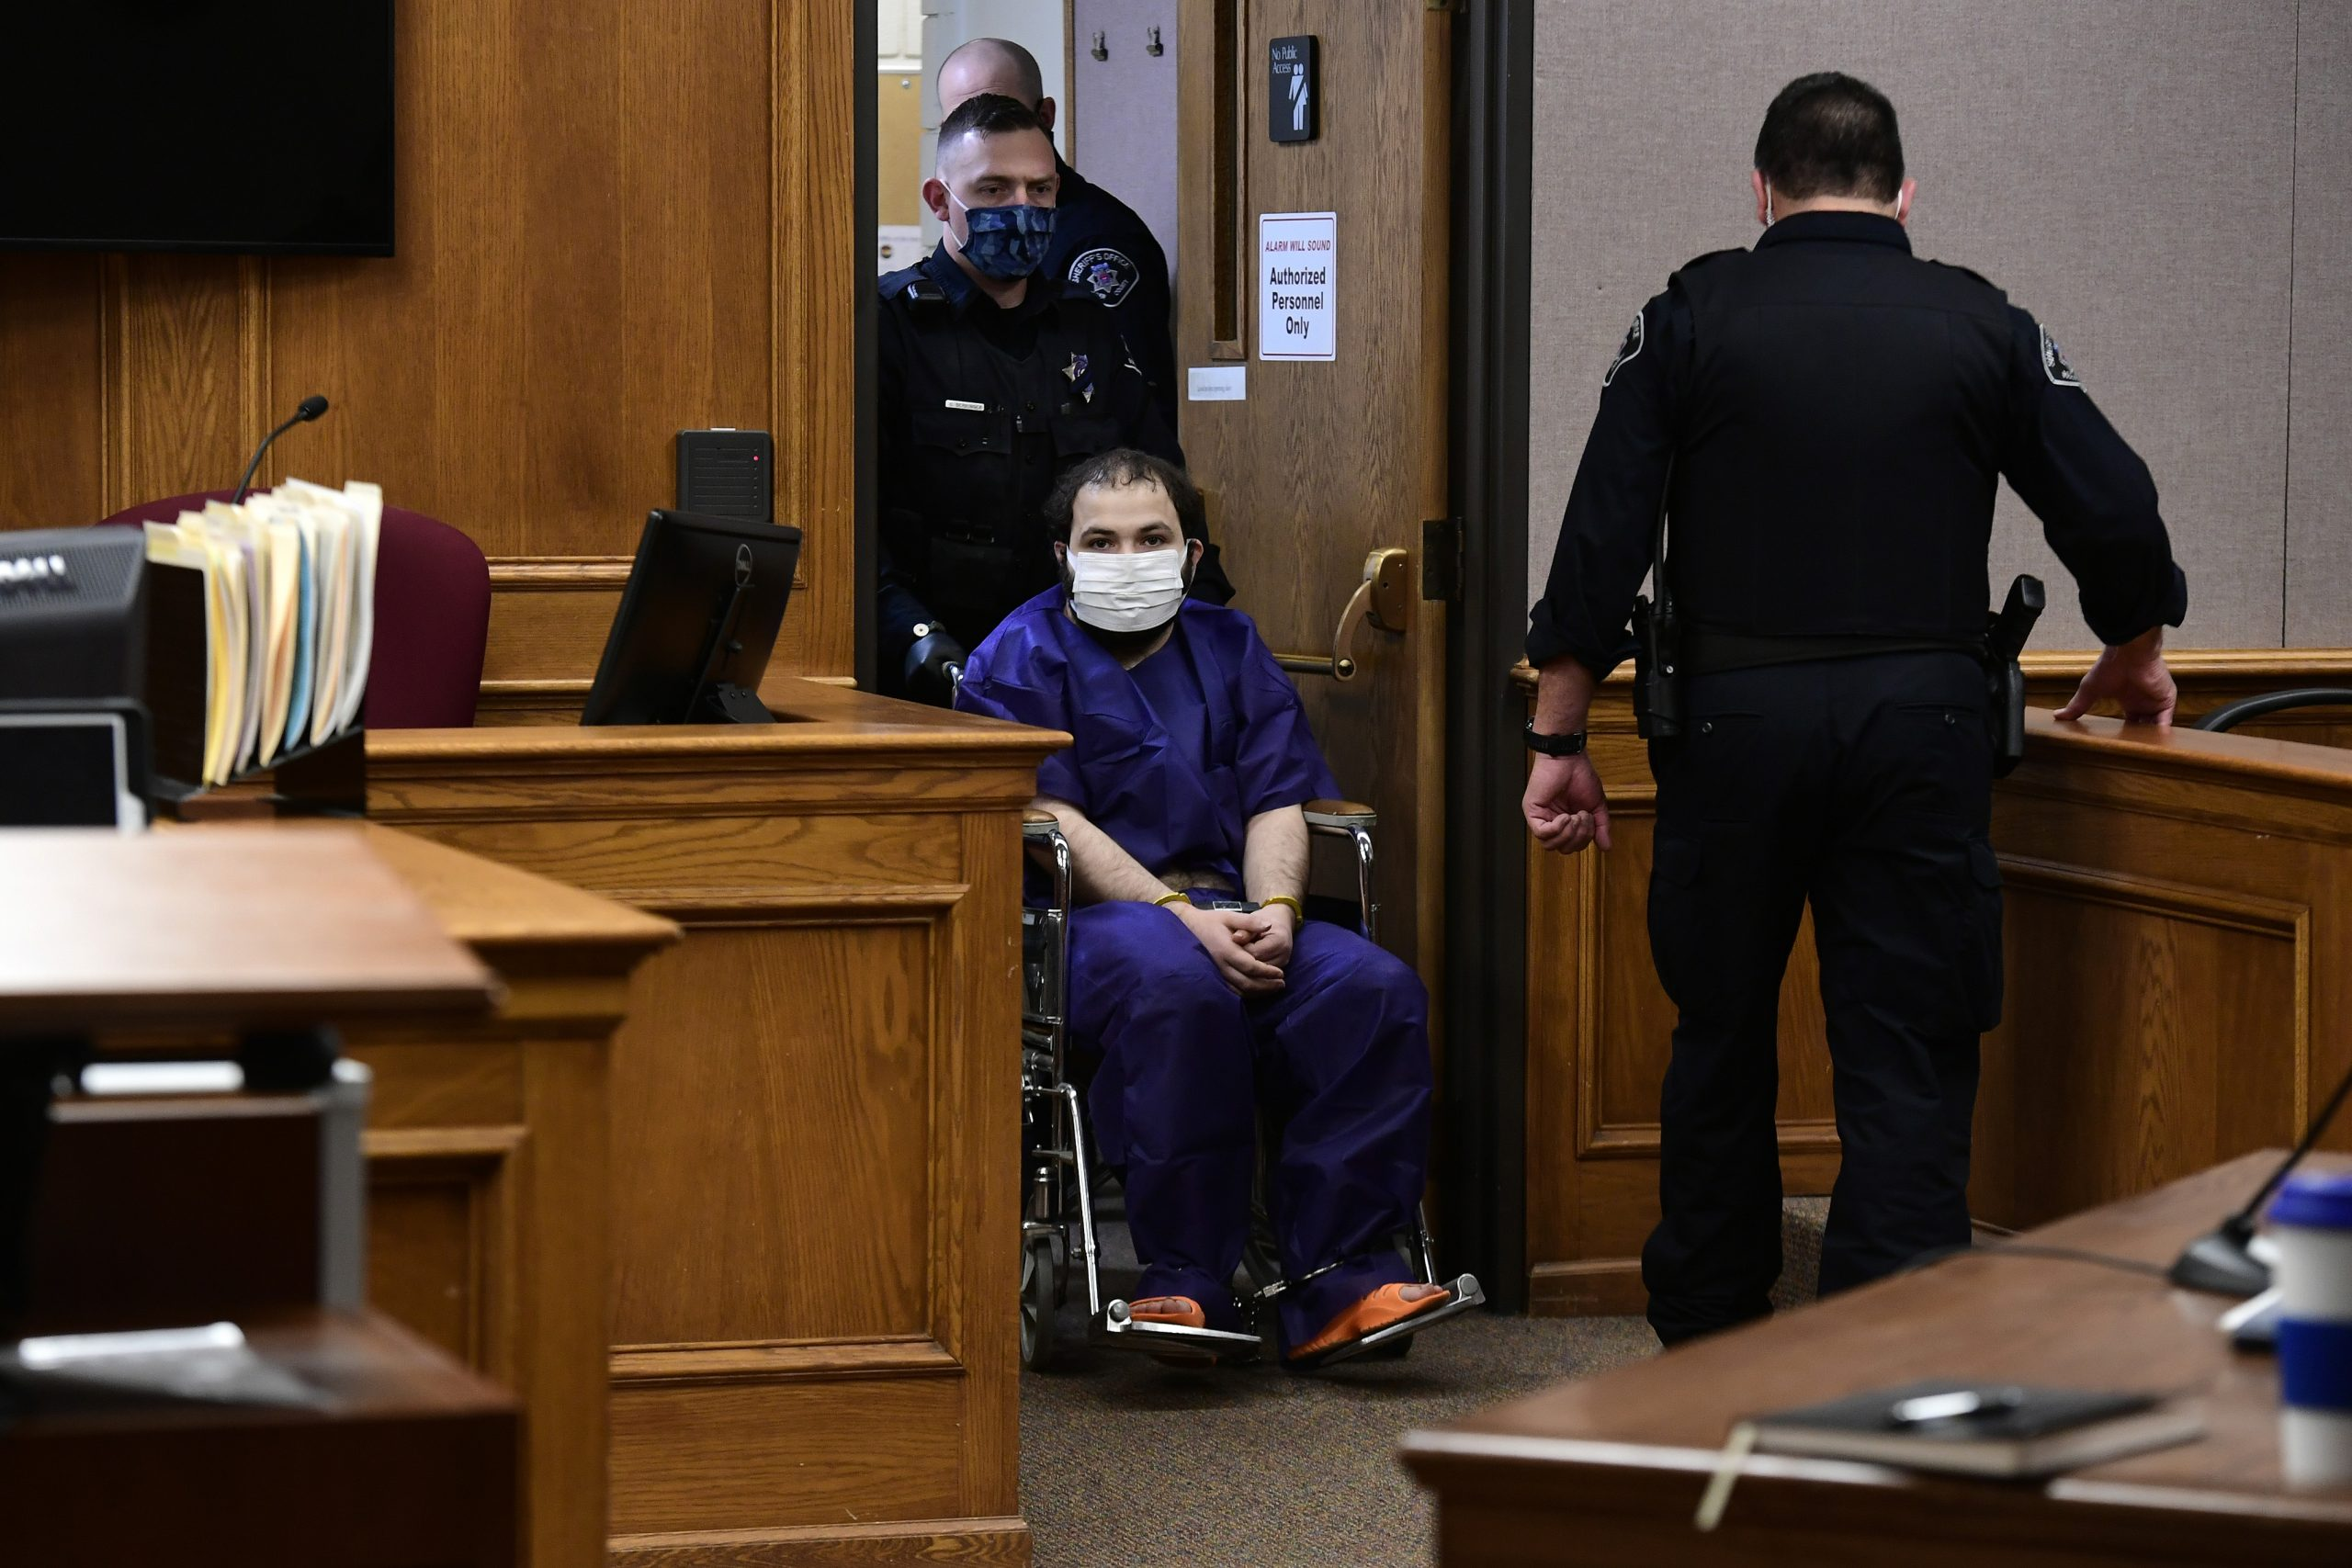 Boulder shooter Ahmad Al Aliwi Alissa makes court appearance